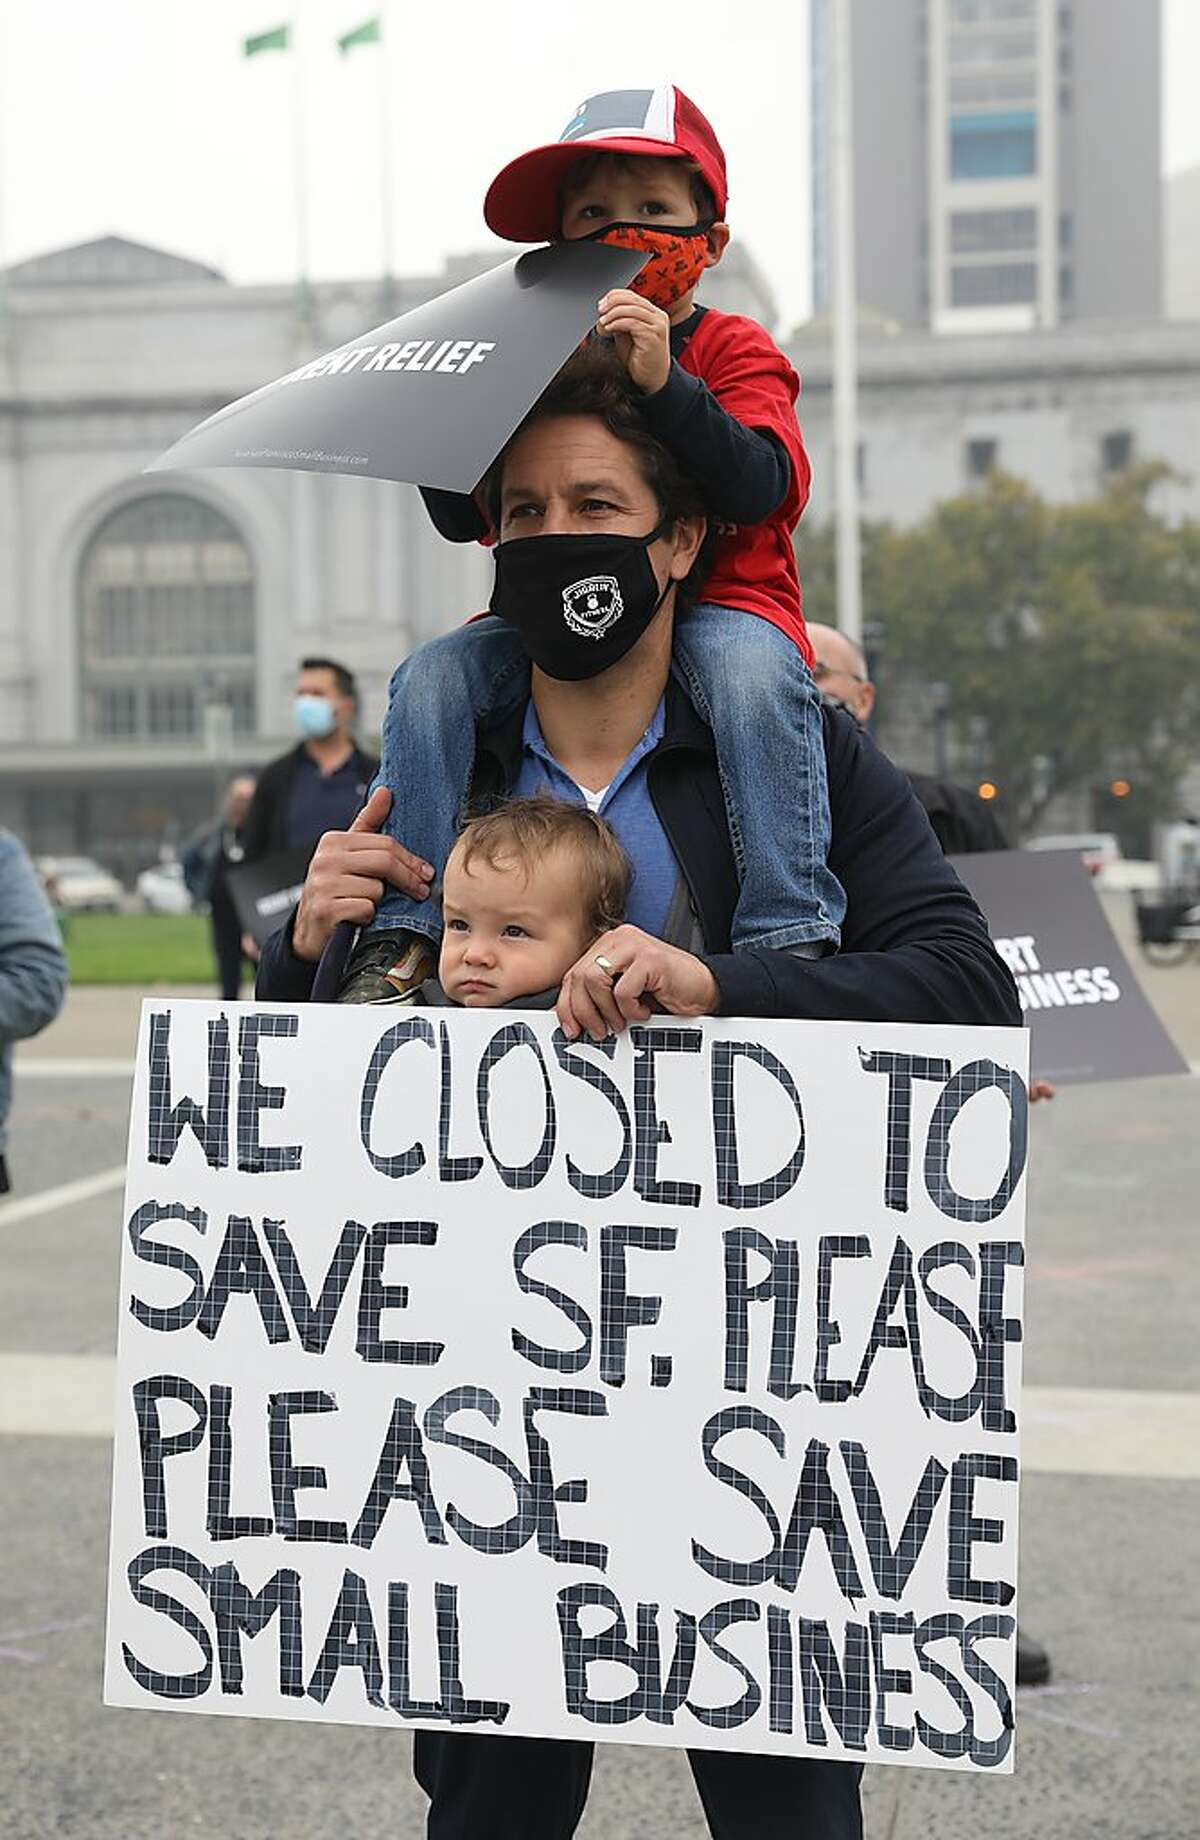 Michael Jigalin with his children Dominic, 1, and Nicolai, 4, protest at the plaza across from city hall on Tuesday, Aug. 25, 2020, in San Francisco, Calif.